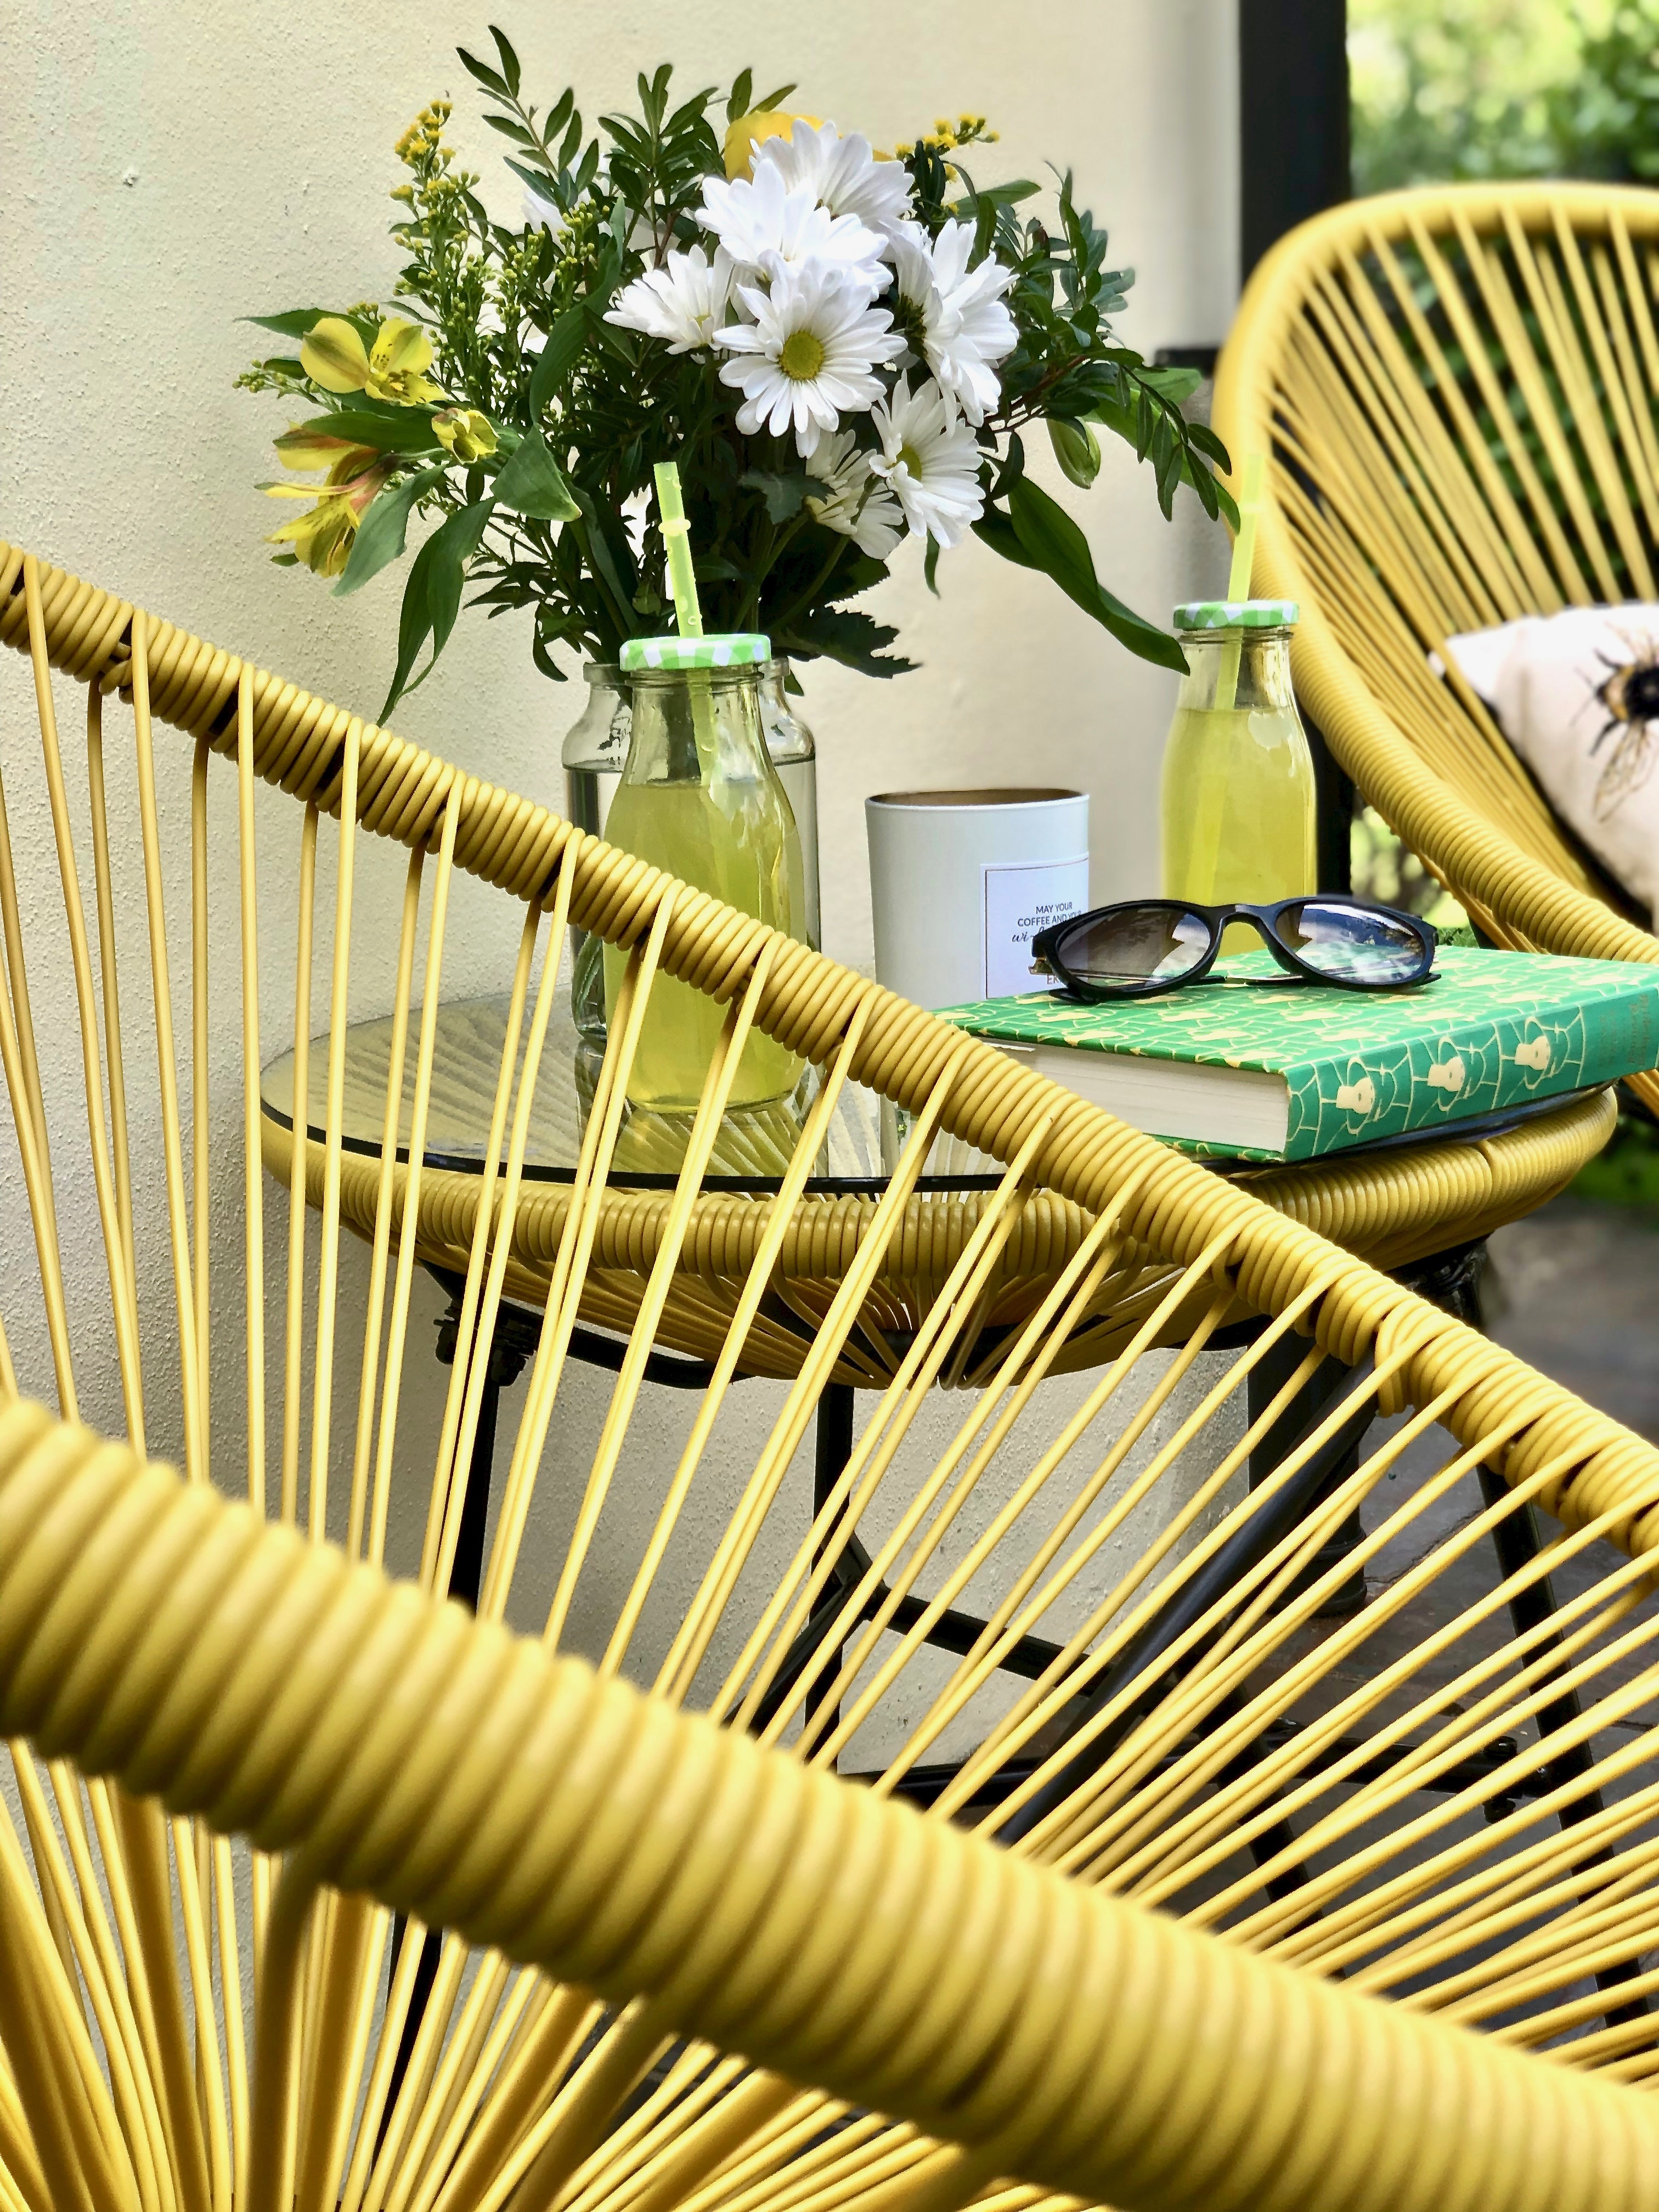 The Perfect Affordable String Garden Furniture - The Interior Editor